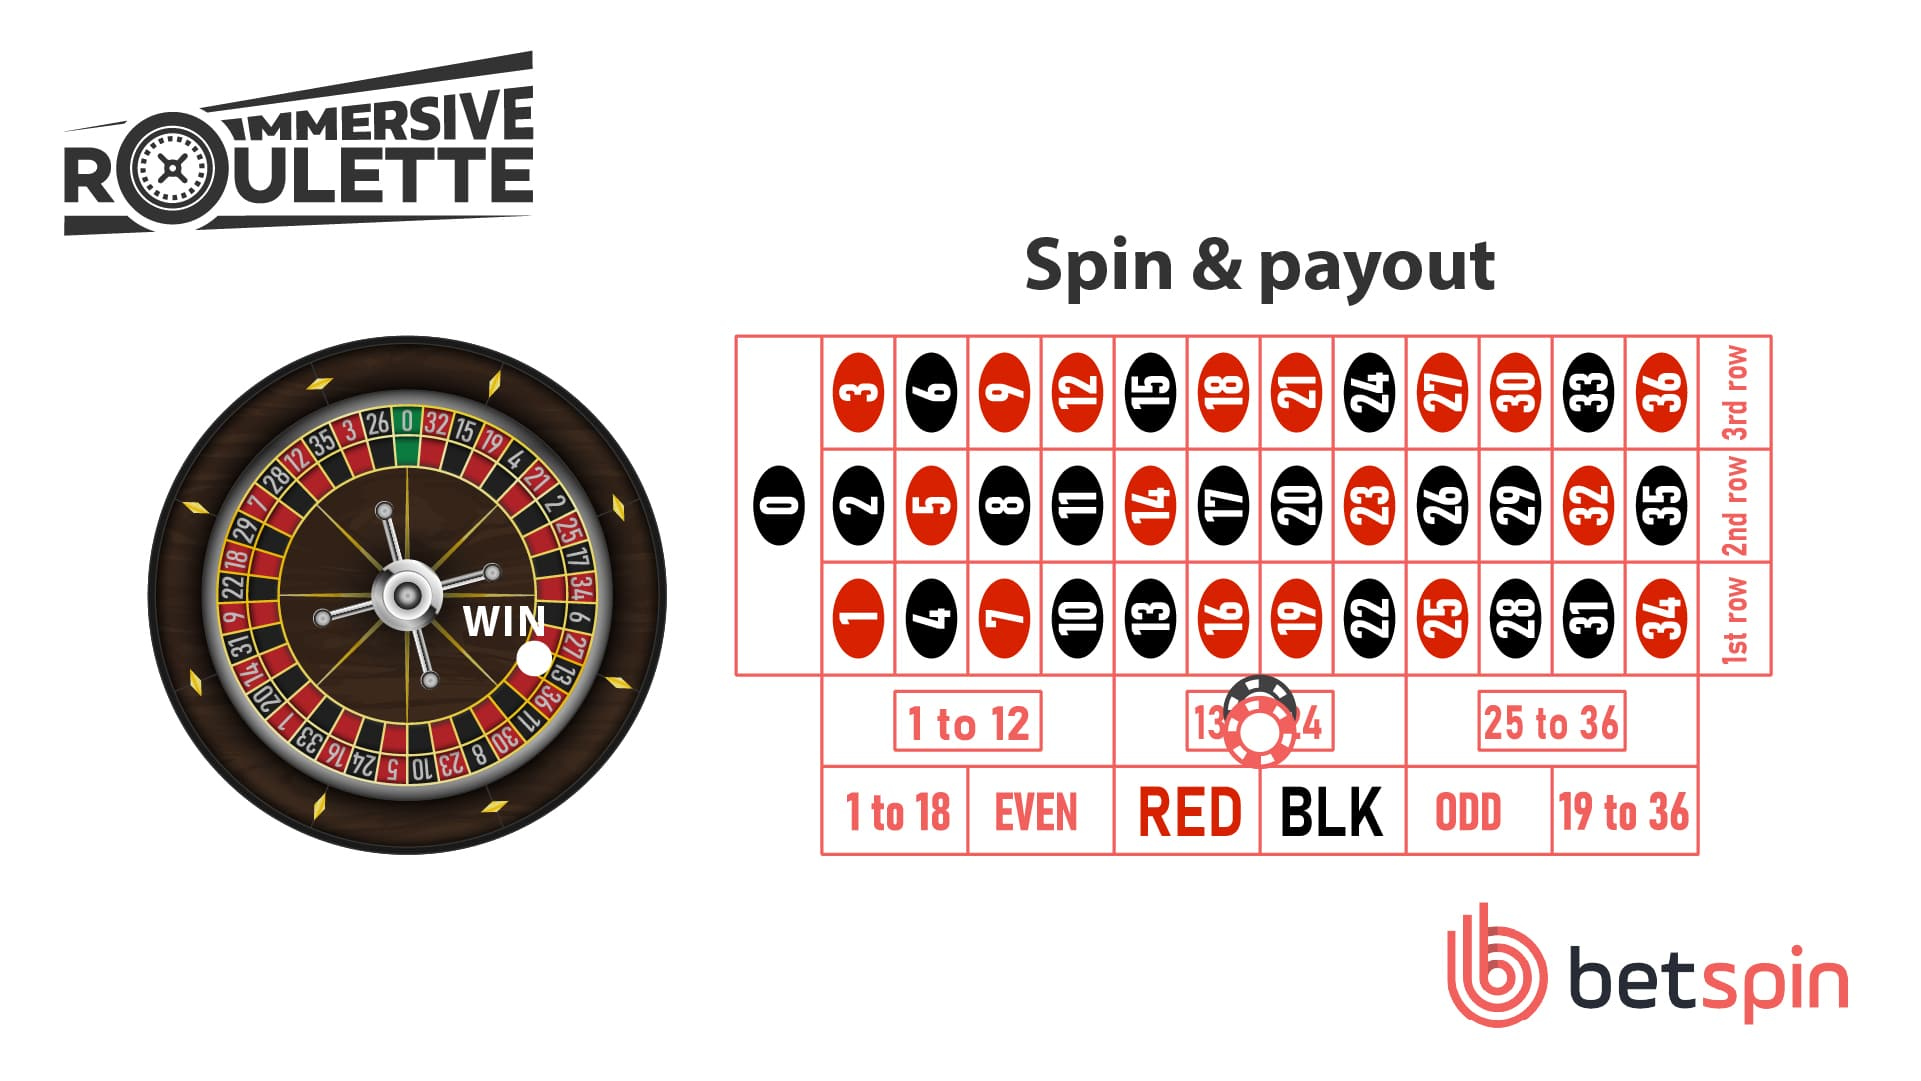 Immersive Roulette Step 3